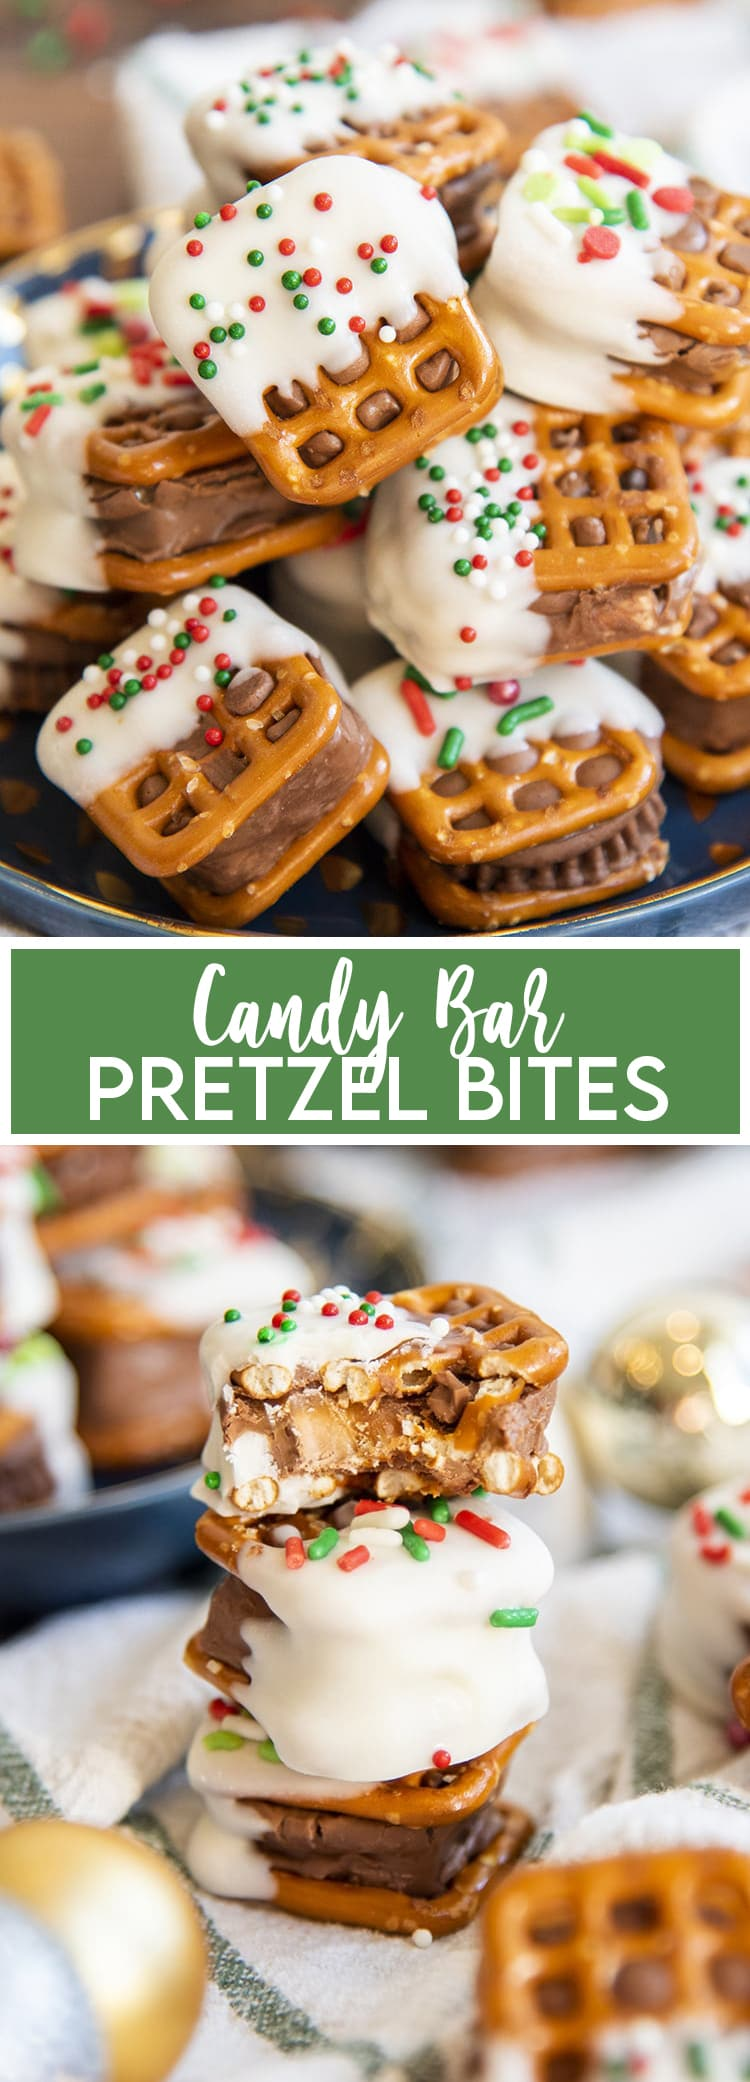 A close up of a plateful of candy bar pretzel bites, with a text overlay at the bottom for pinterst. Then a photo underneath with a stack of candy bar pretzel bites, and the top is bitten in half to show the candy bar.